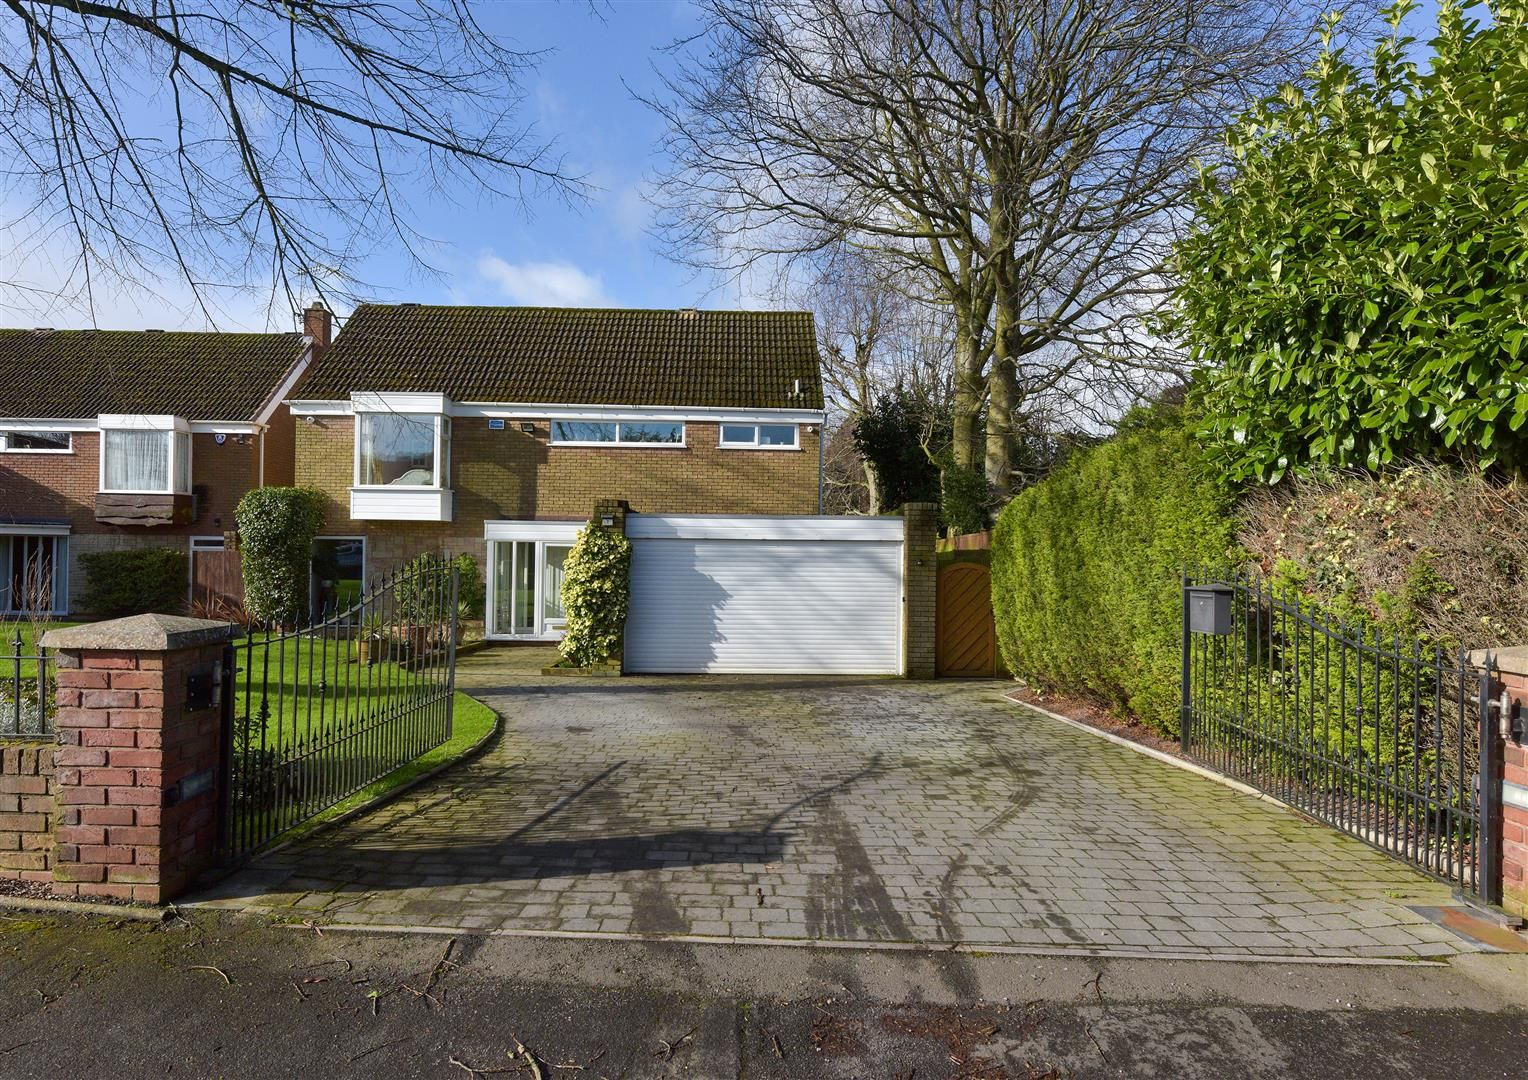 4 bed detached for sale, DY9